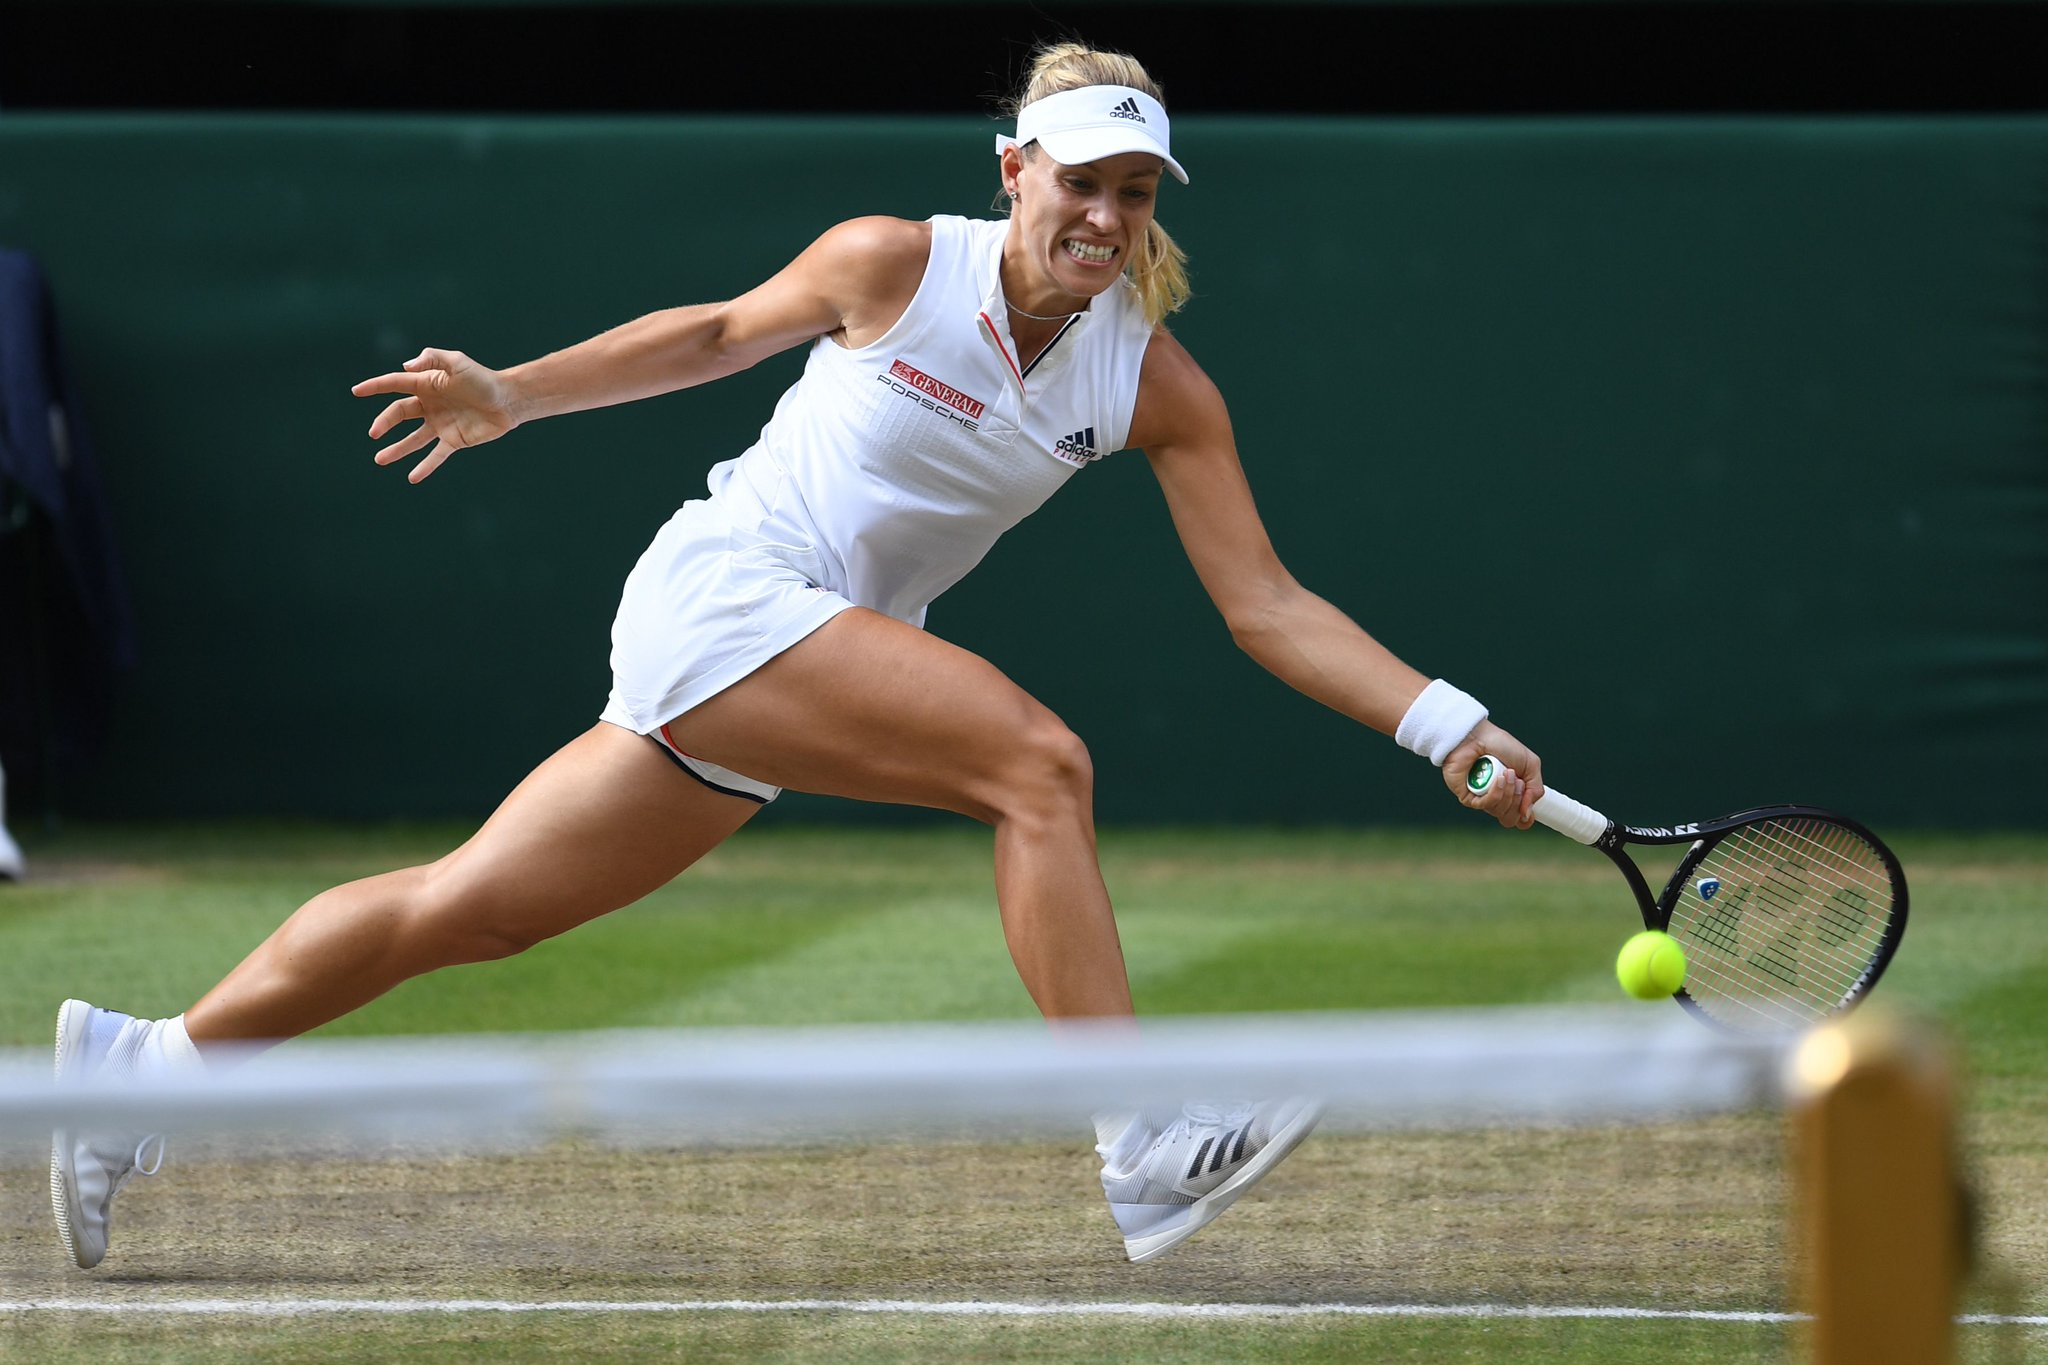 .@AngeliqueKerber is the @Wimbledon champion!  Eases past Serena Williams 6-3, 6-3! https://t.co/k7oMPhLaRV